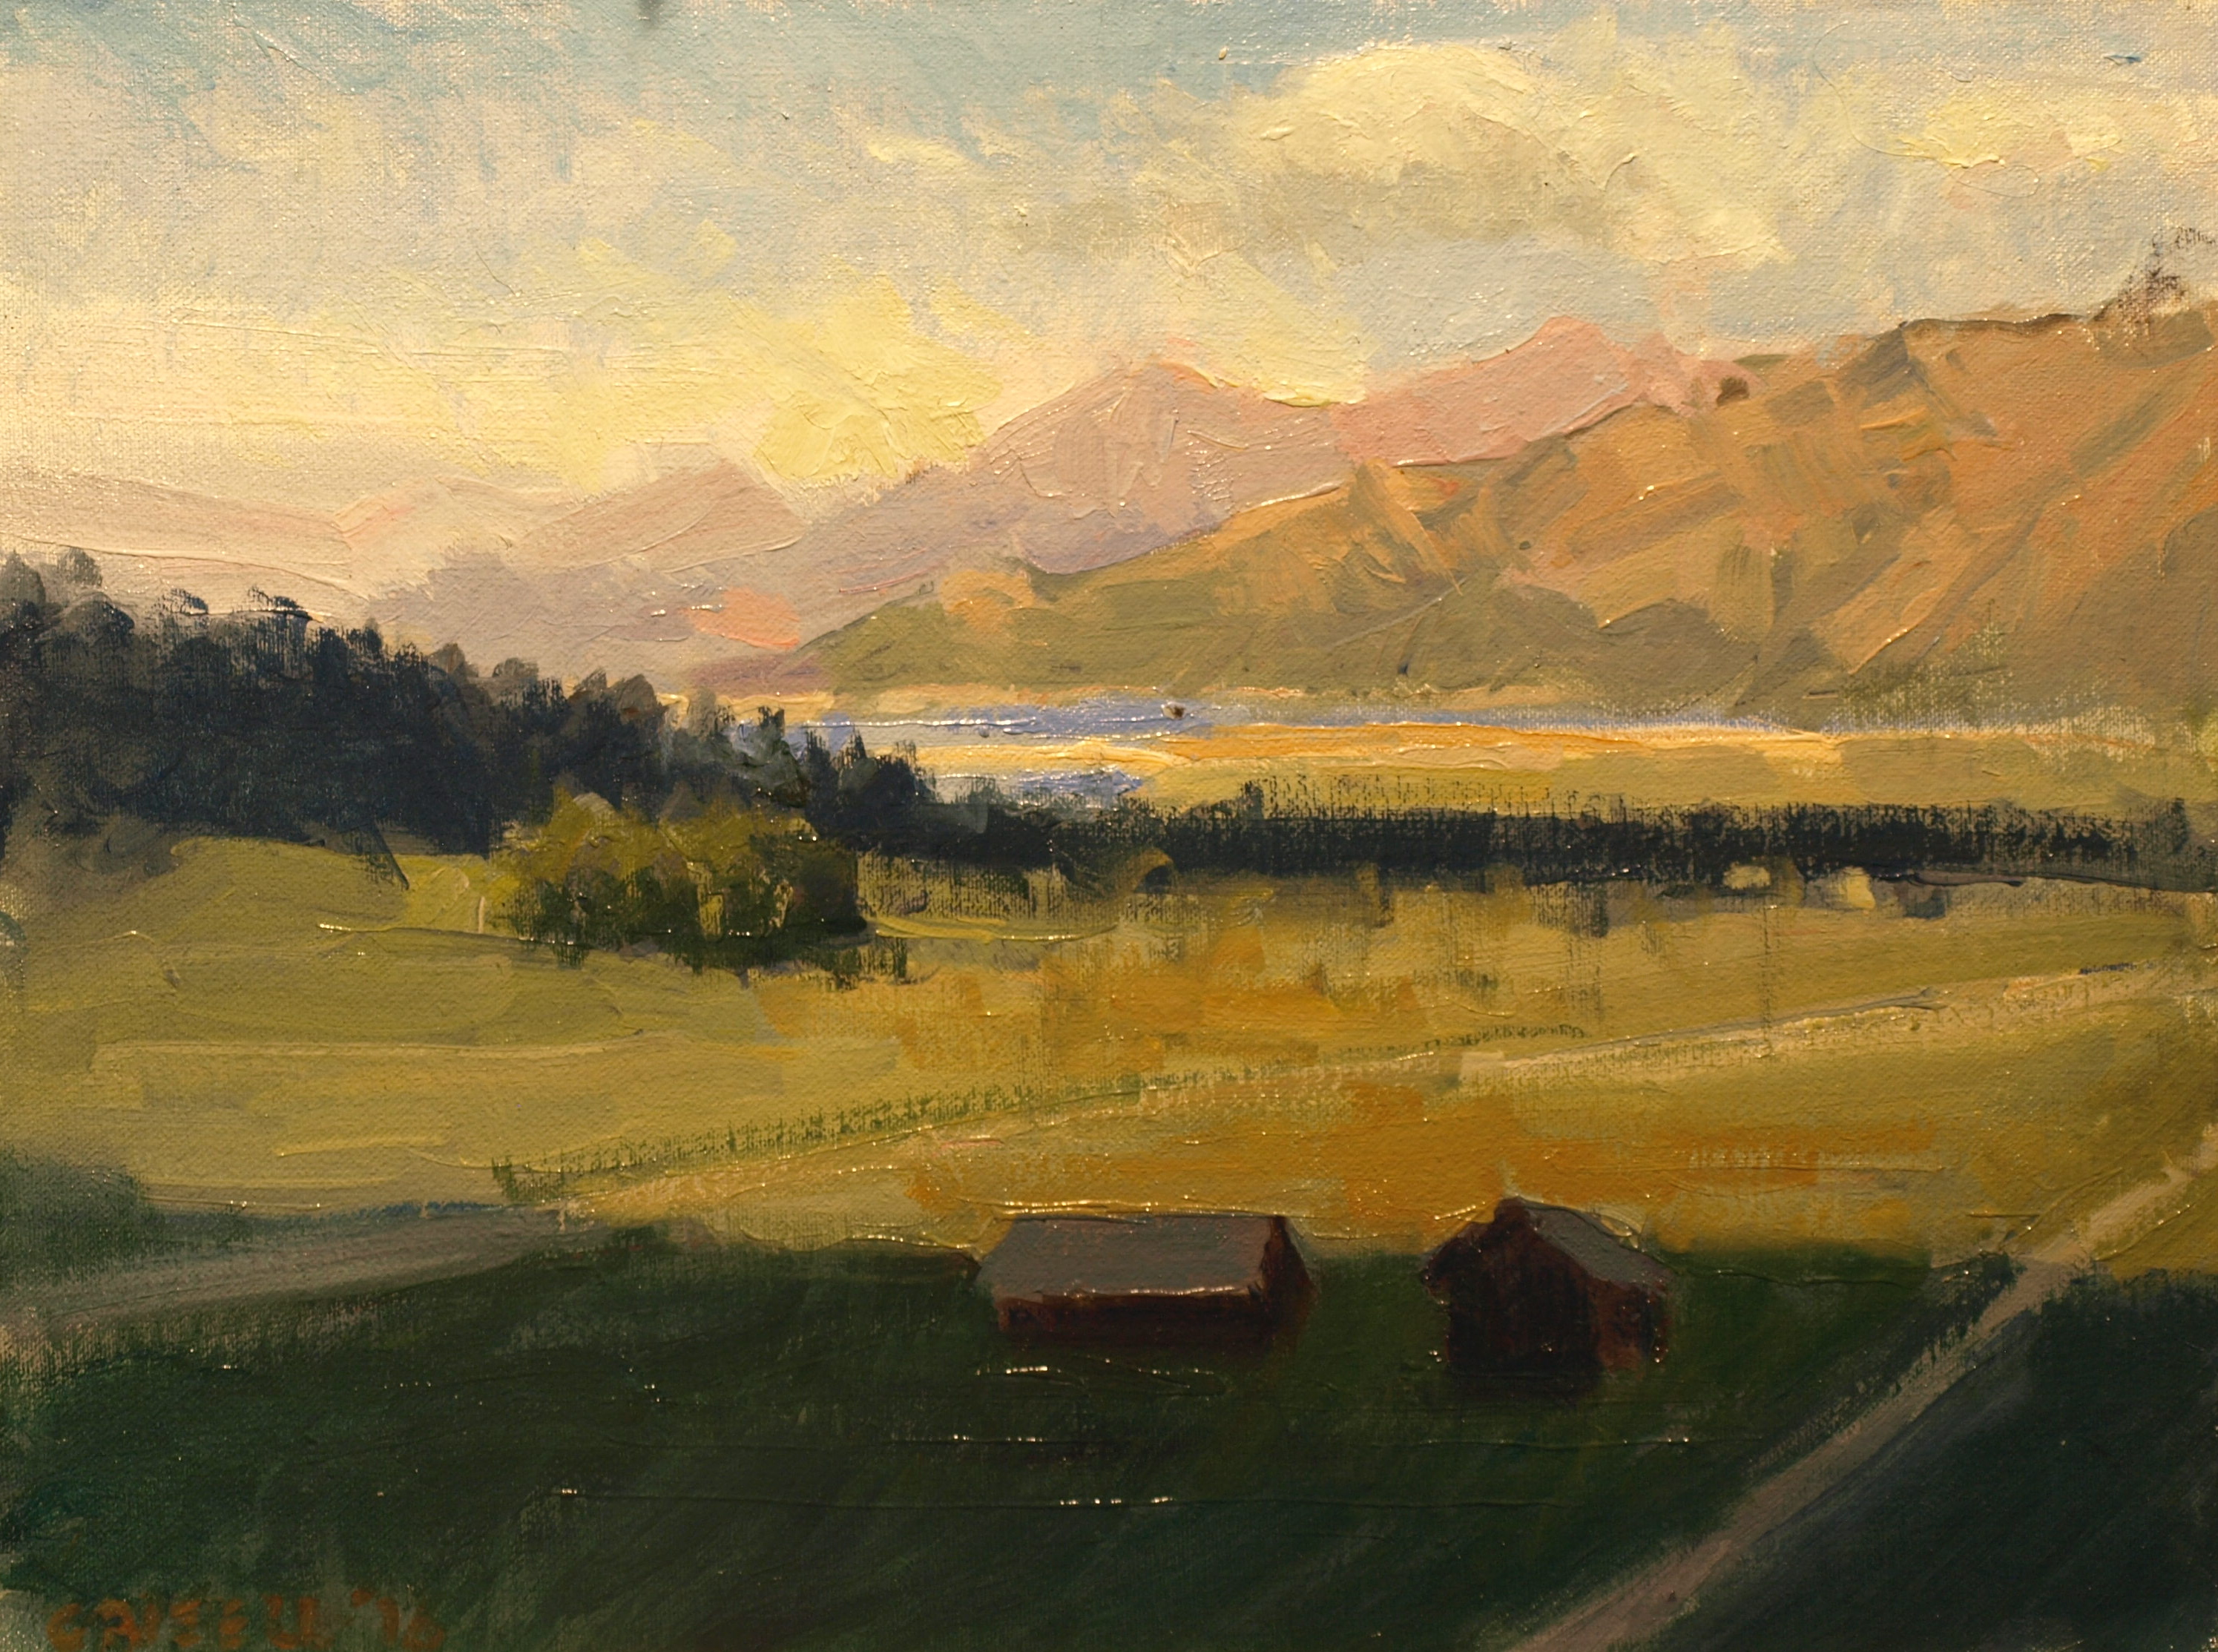 Alpine, Oil on Canvas on Panel, 12 x 16 Inches, by Susan Grisell, $275